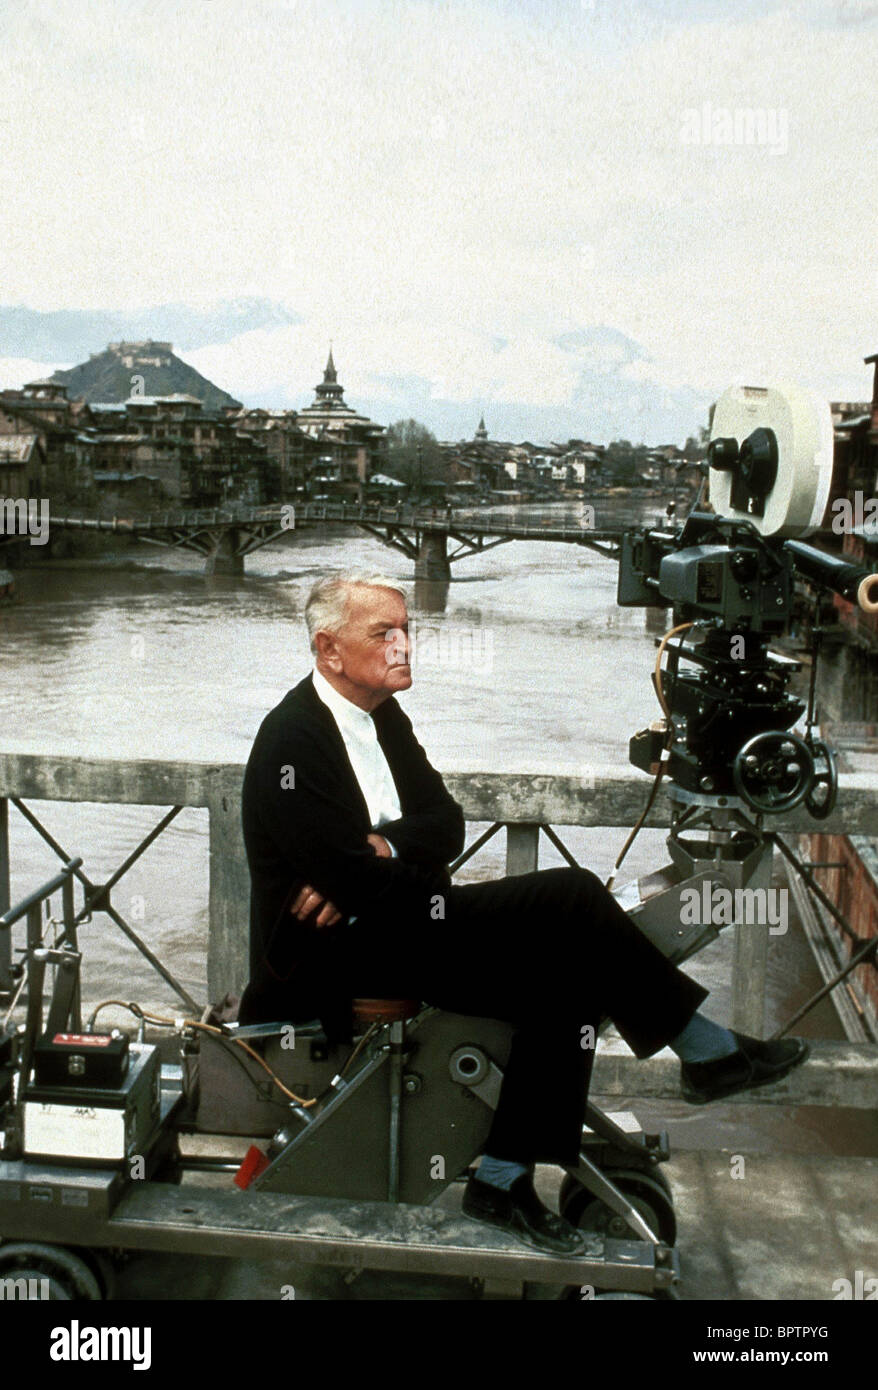 SIR DAVID LEAN A PASSAGE TO INDIA (1984) - Stock Image